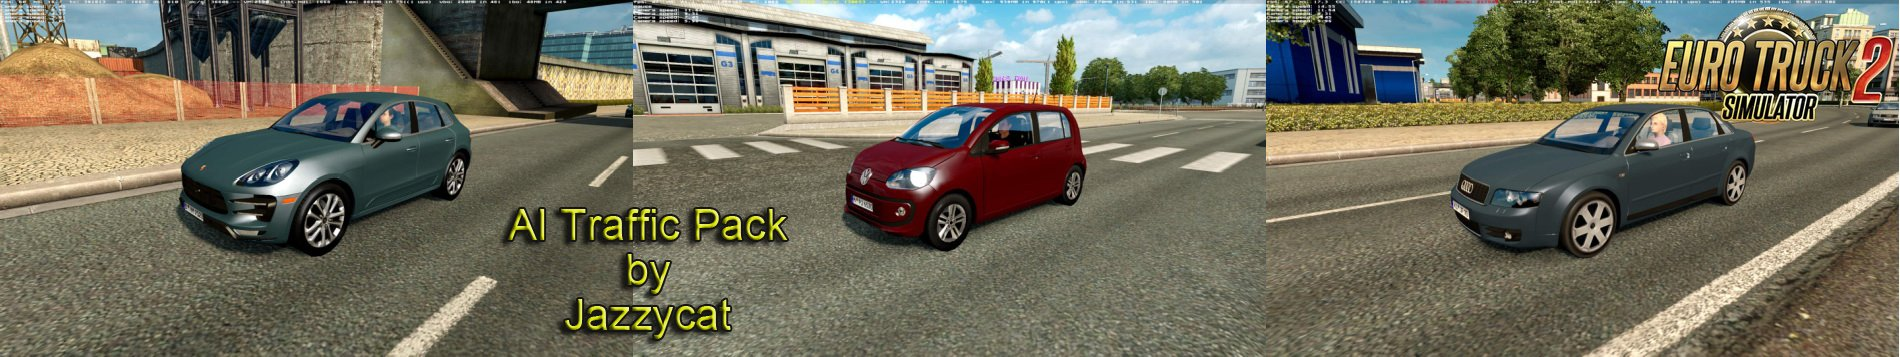 AI Traffic Pack v5.5 by Jazzycat